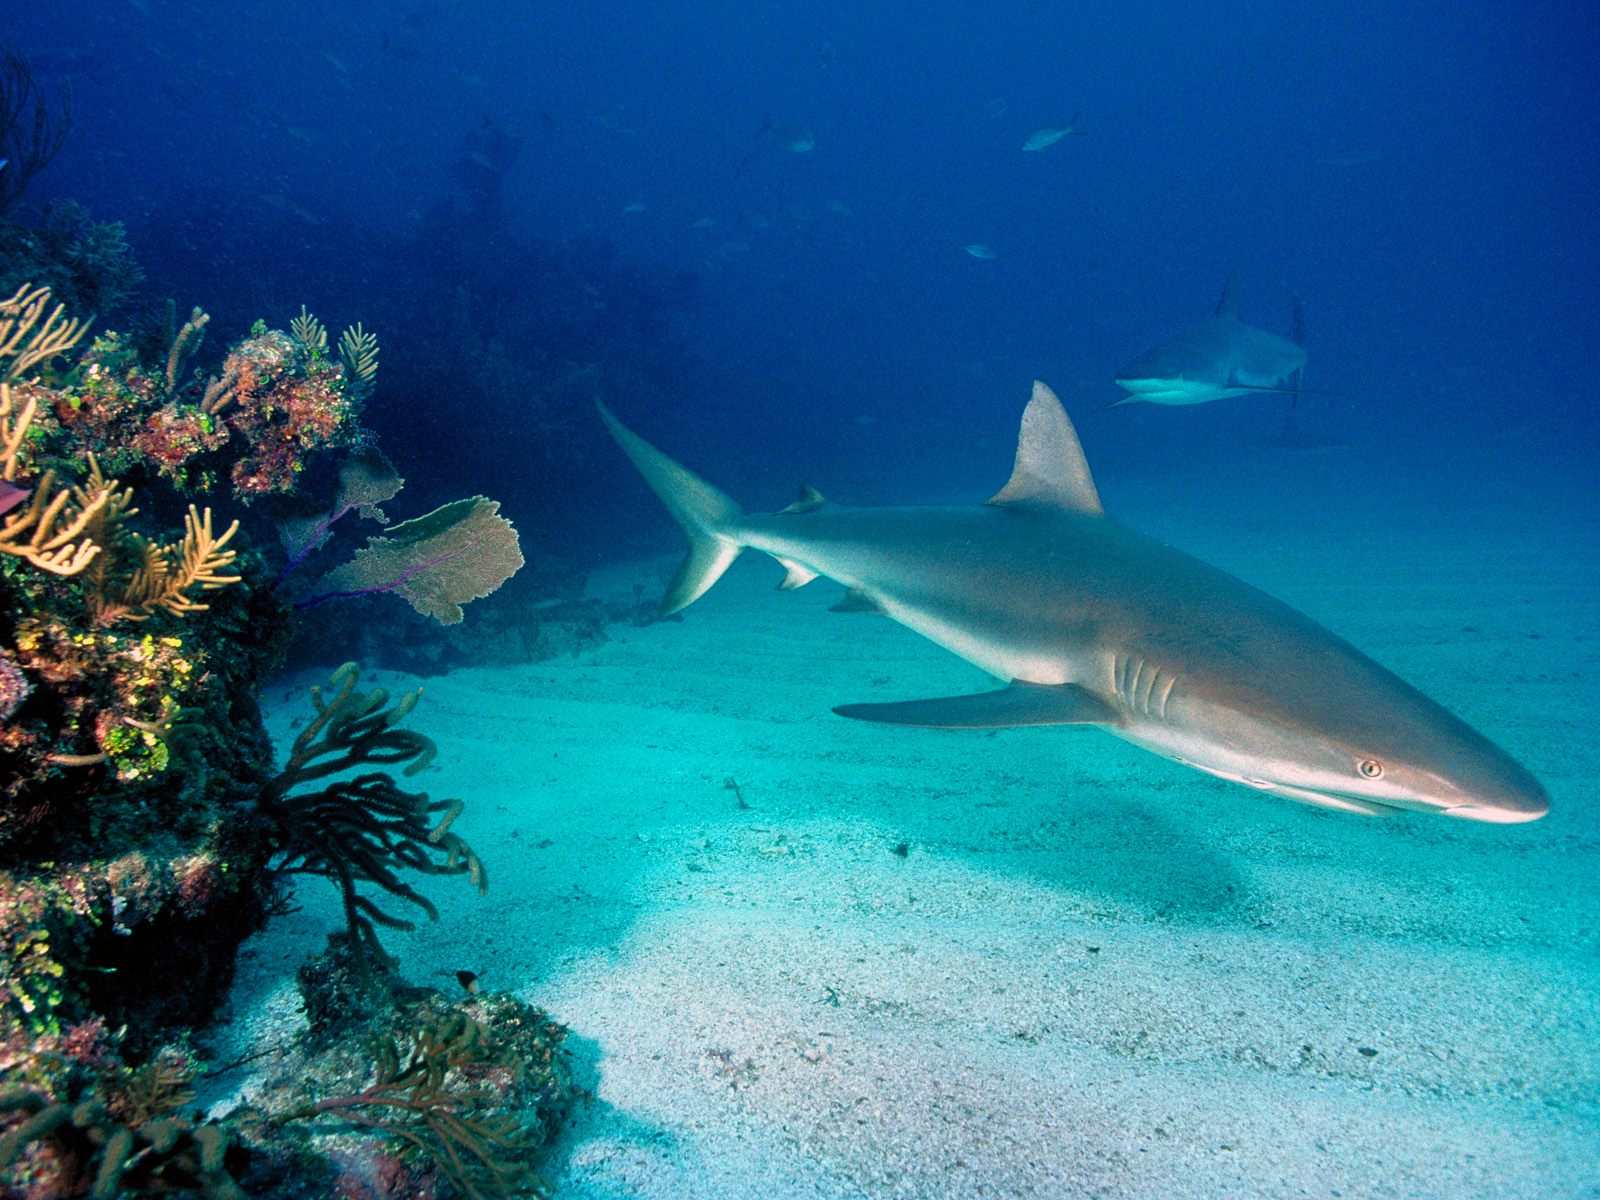 Grey reef sharks wallpapers and images   wallpapers pictures photos 1600x1200